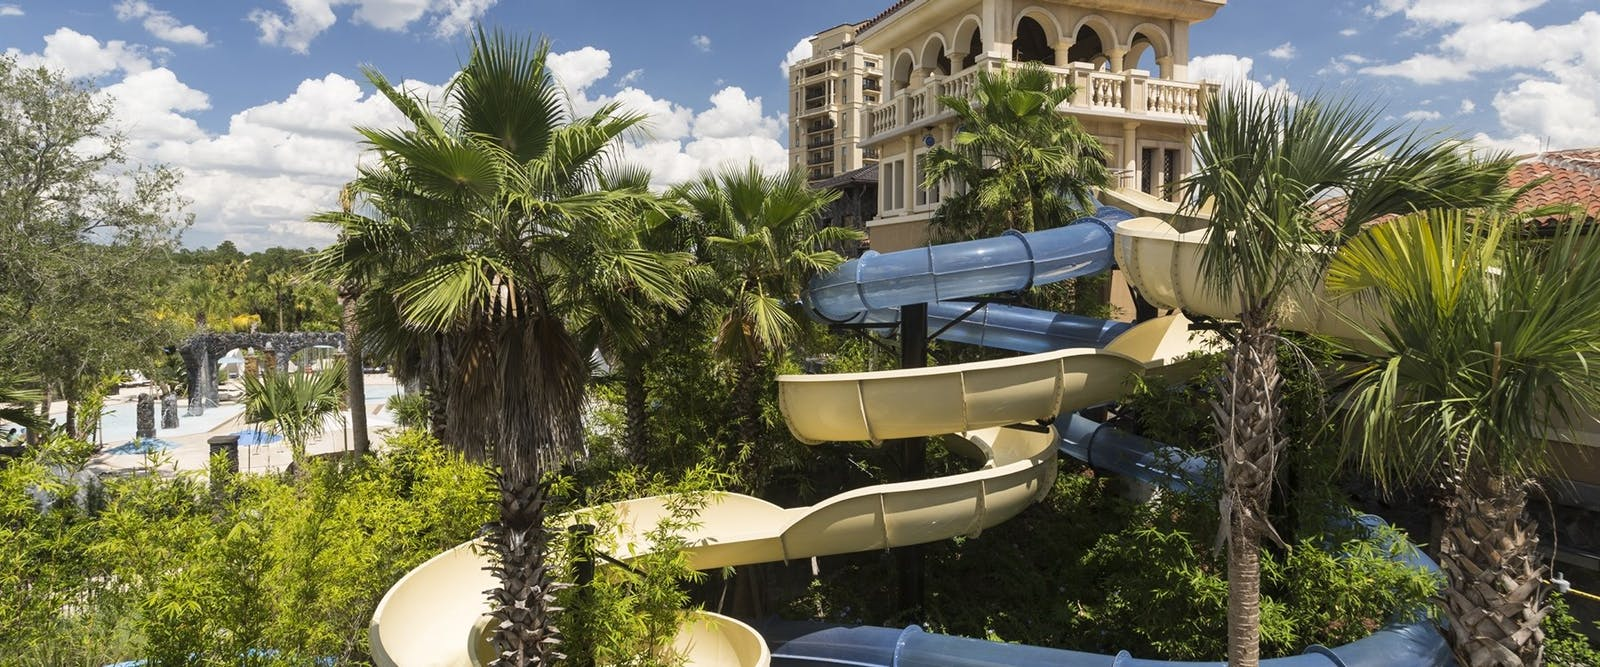 The Drop Waterslides at Four Seasons Resort Orlando at Walt Disney World Resort, Florida